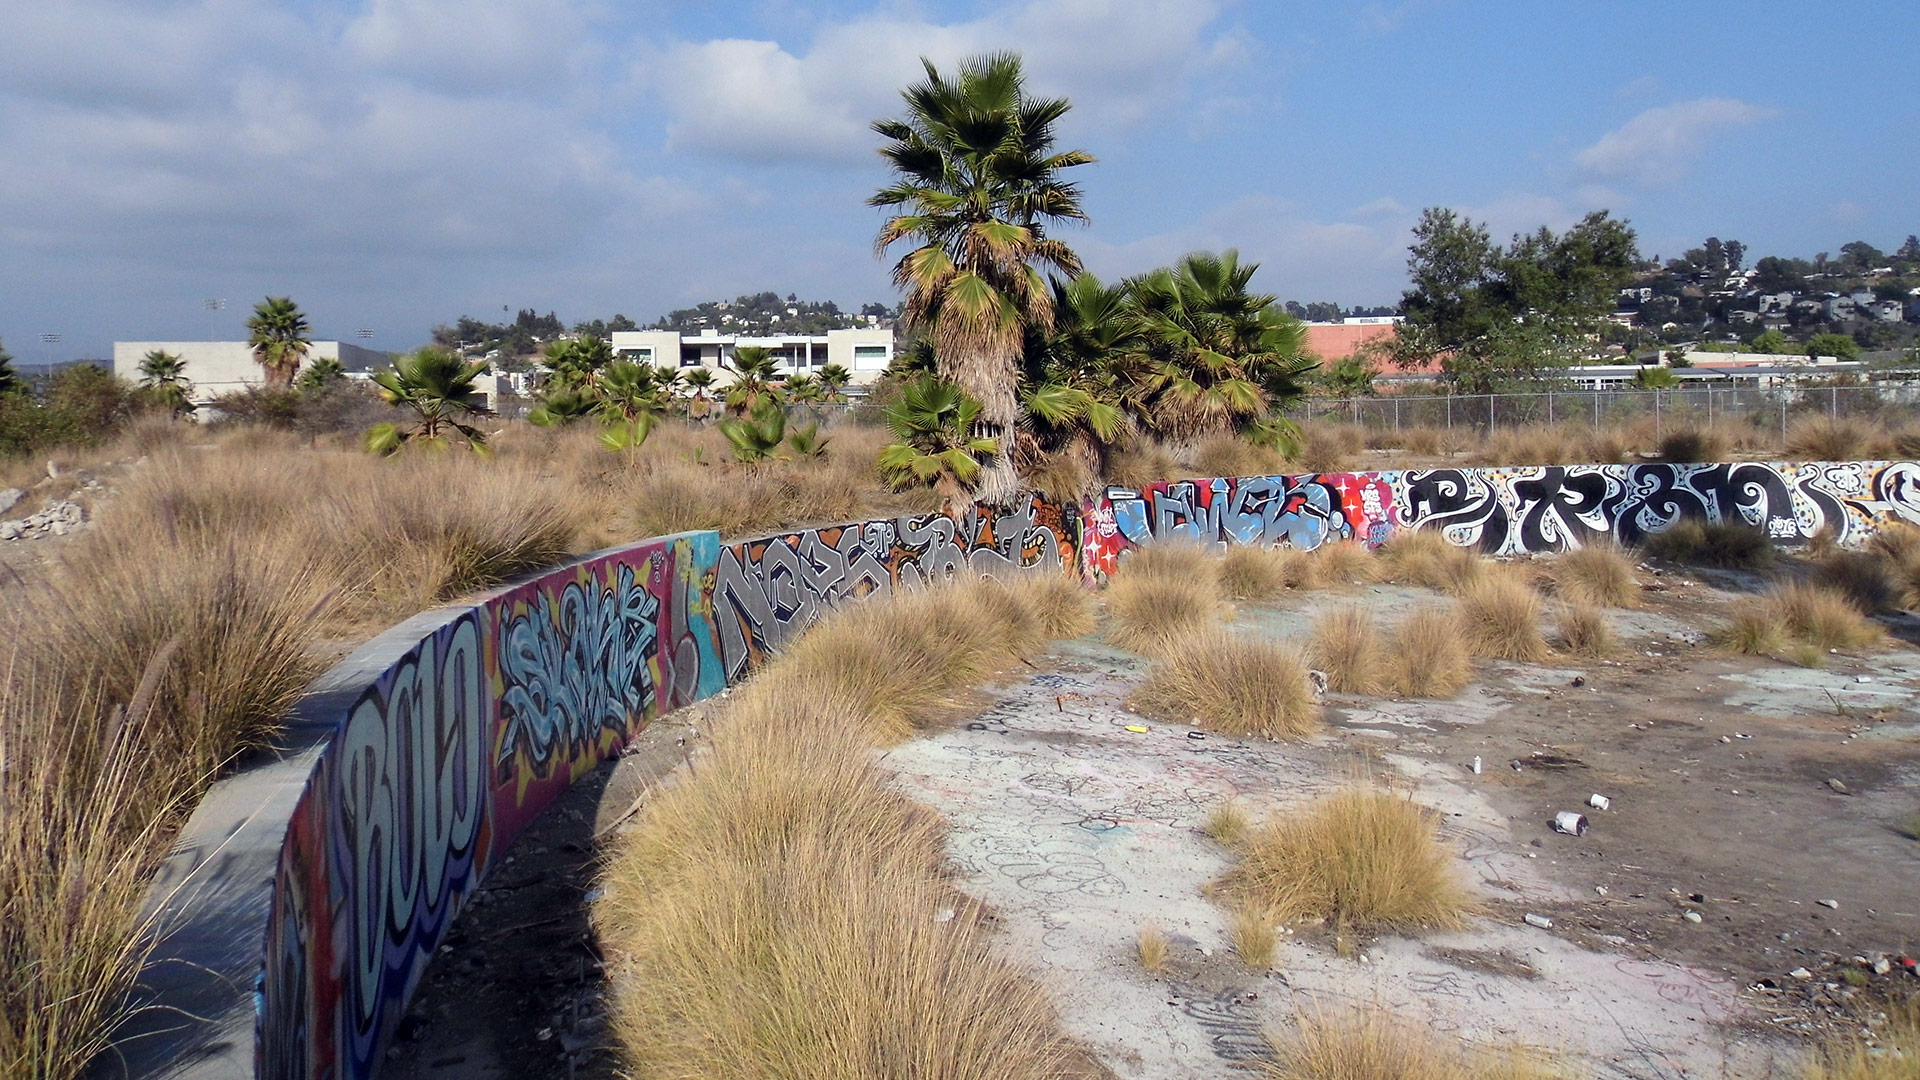 The Bowtie project's graffitied roundhouse foundation. | Sandi Hemmerlein